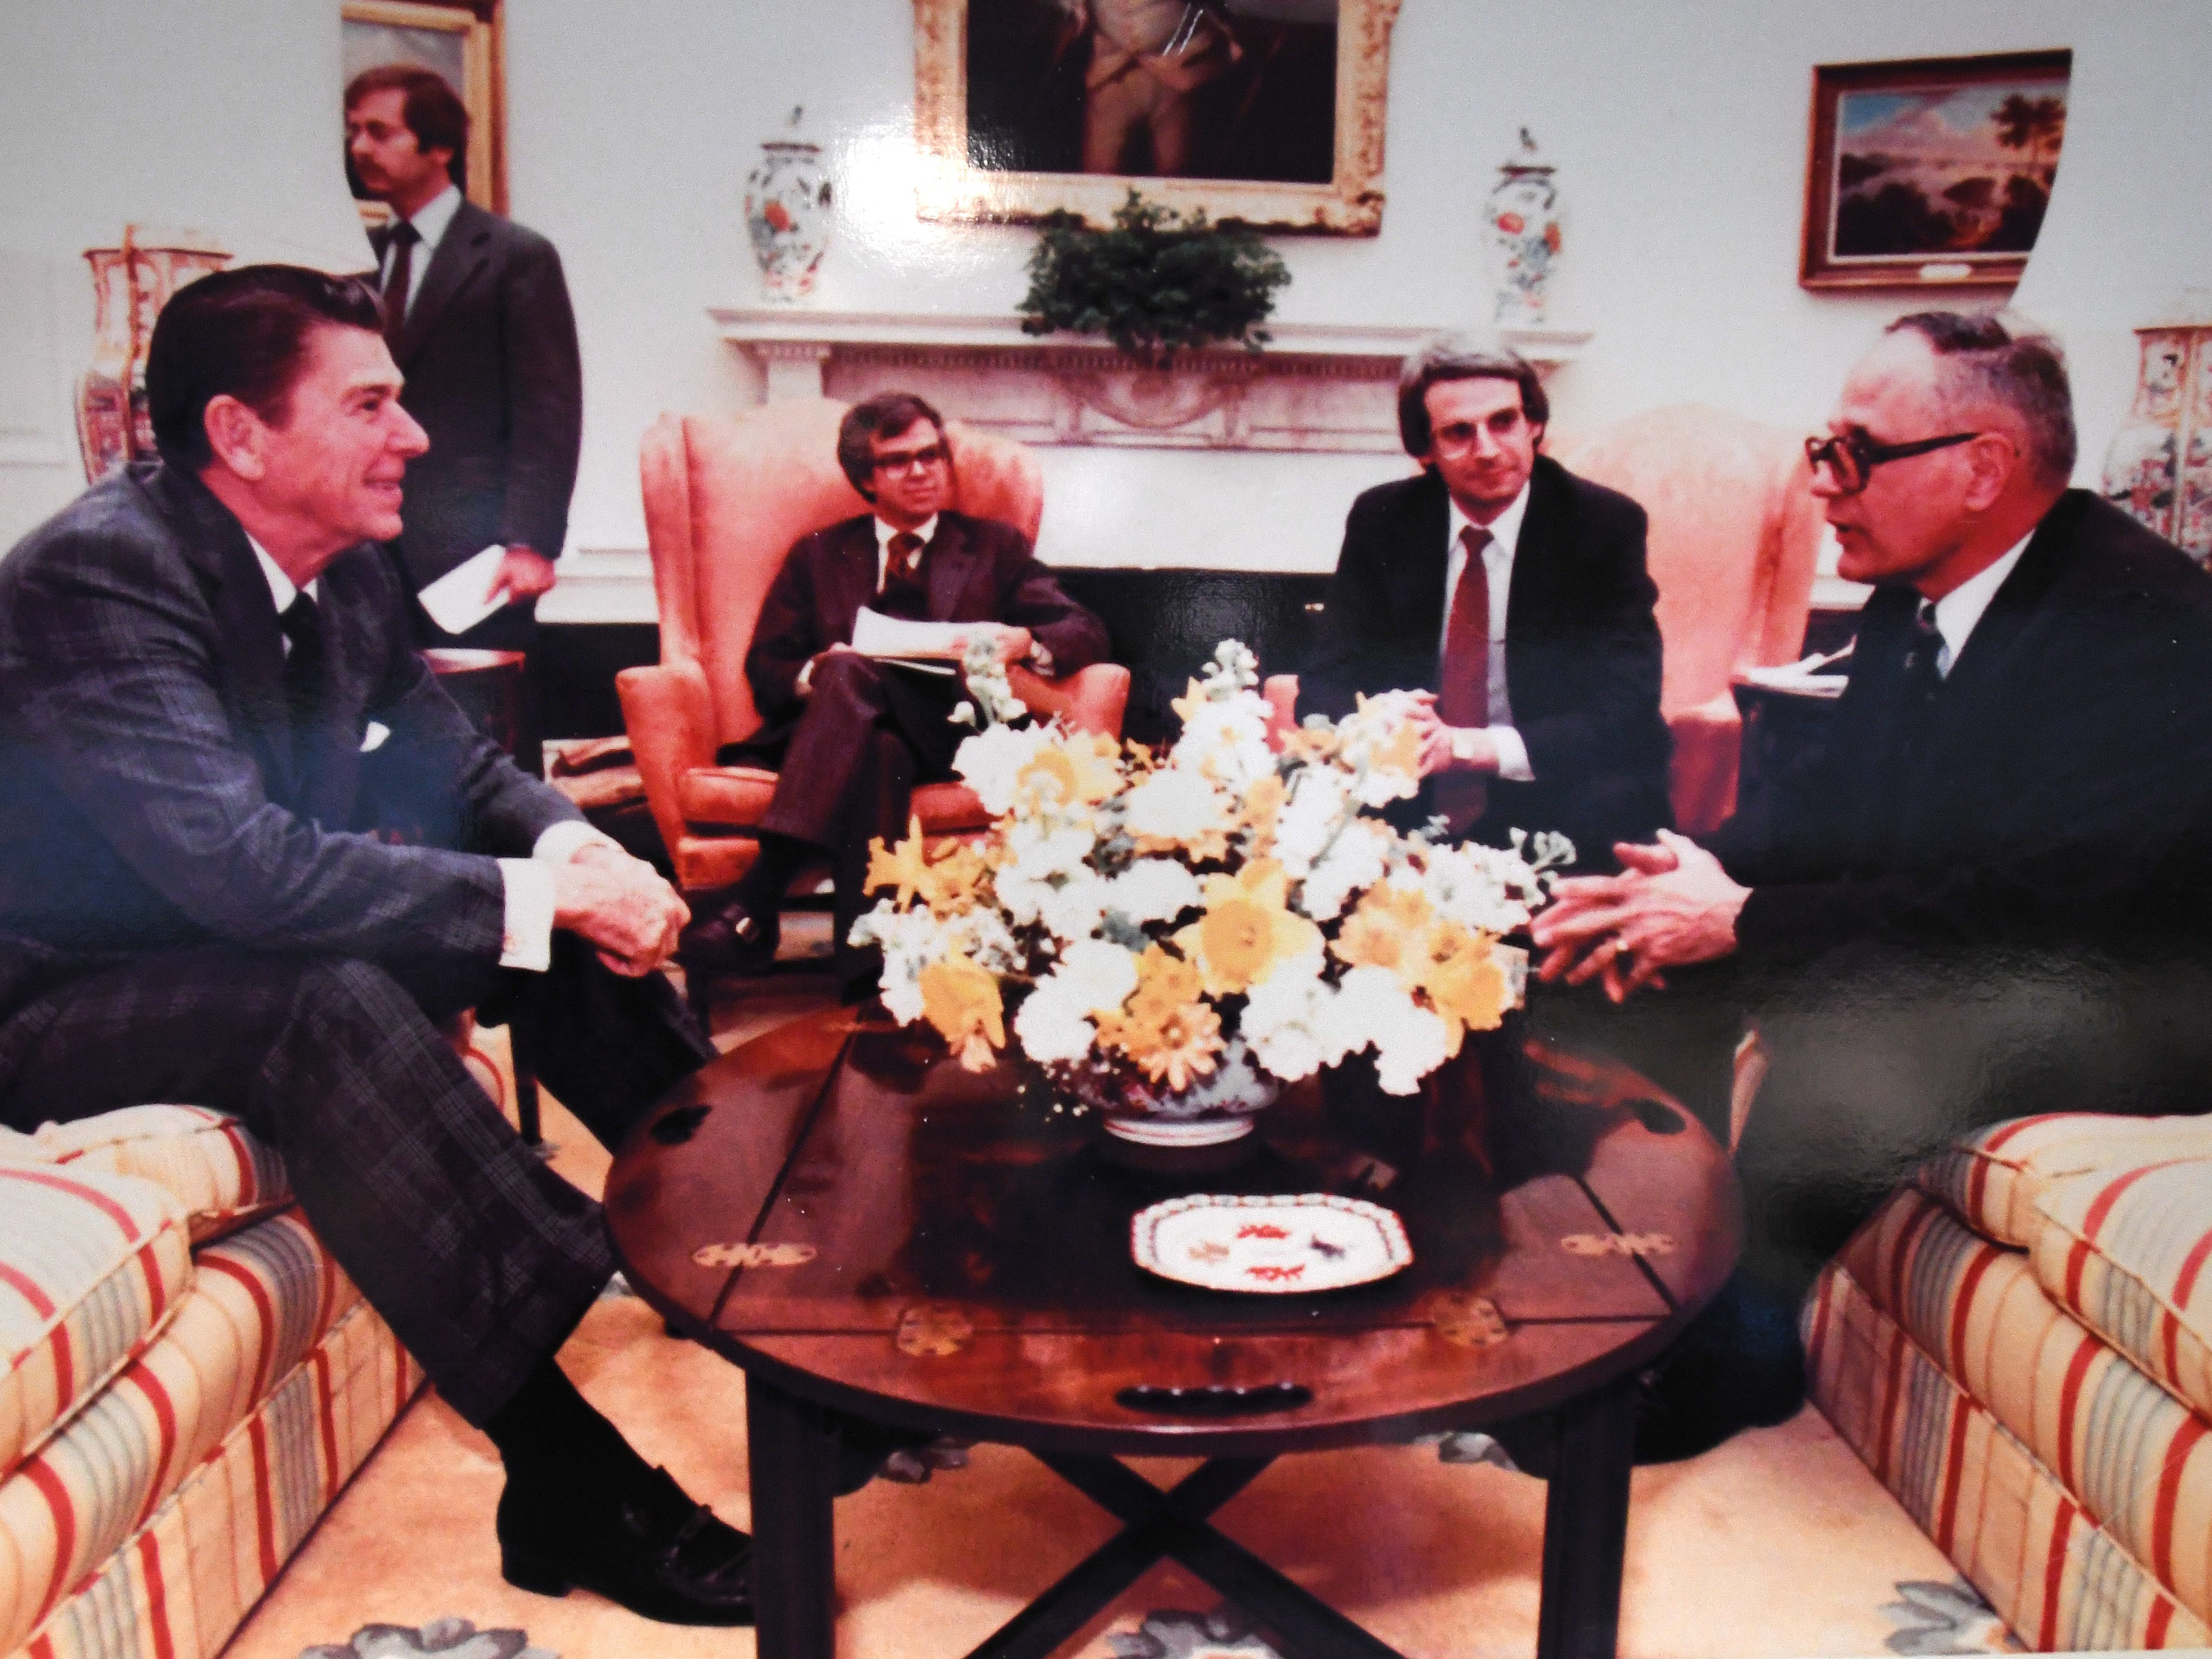 President Ronald Reagan chats with Dingell in the White House.